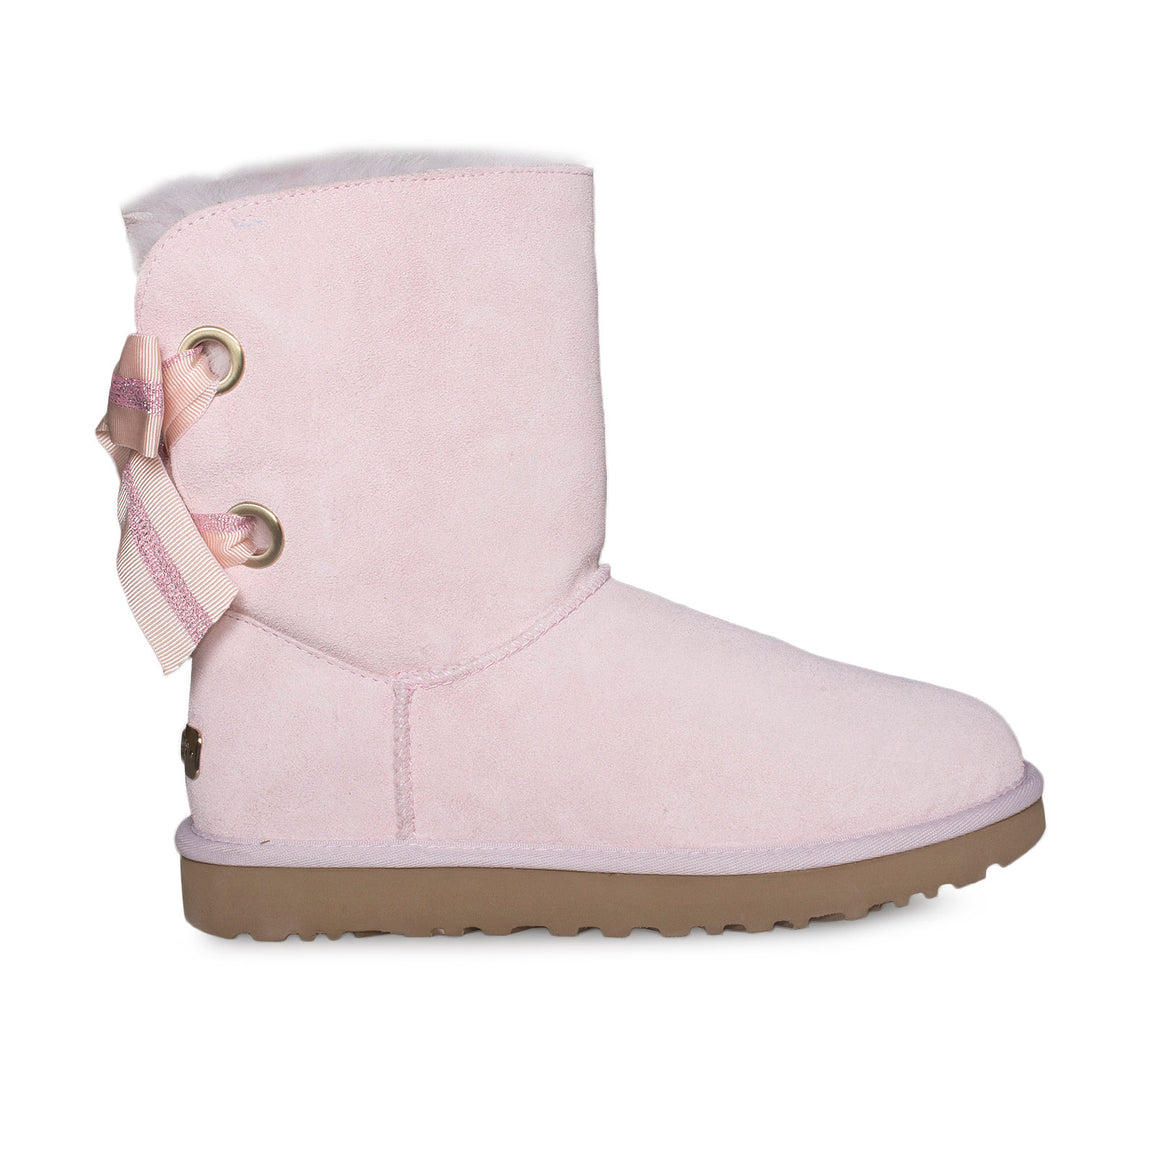 UGG Customizable Bailey Bow Short Seashell Pink Boots - Women's